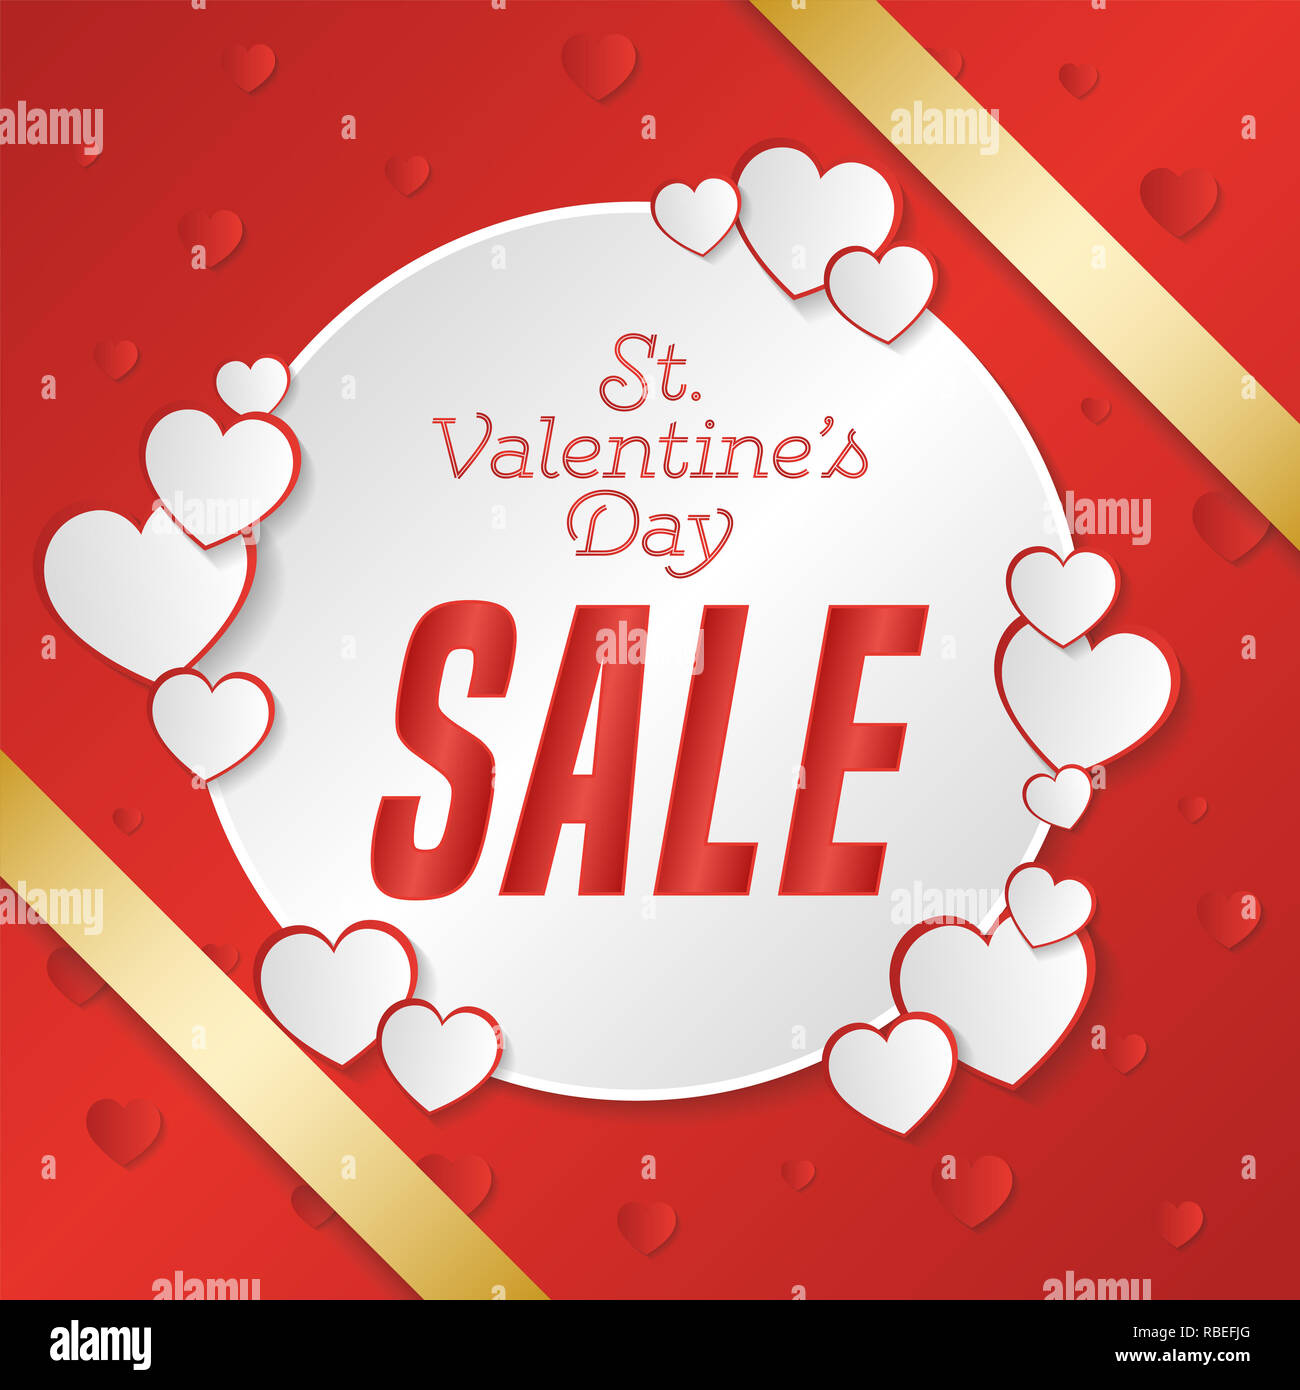 St. Valentine's Day big sale banner. Composition with hearts, gold strip and briight point. Vector illustration. - Stock Image